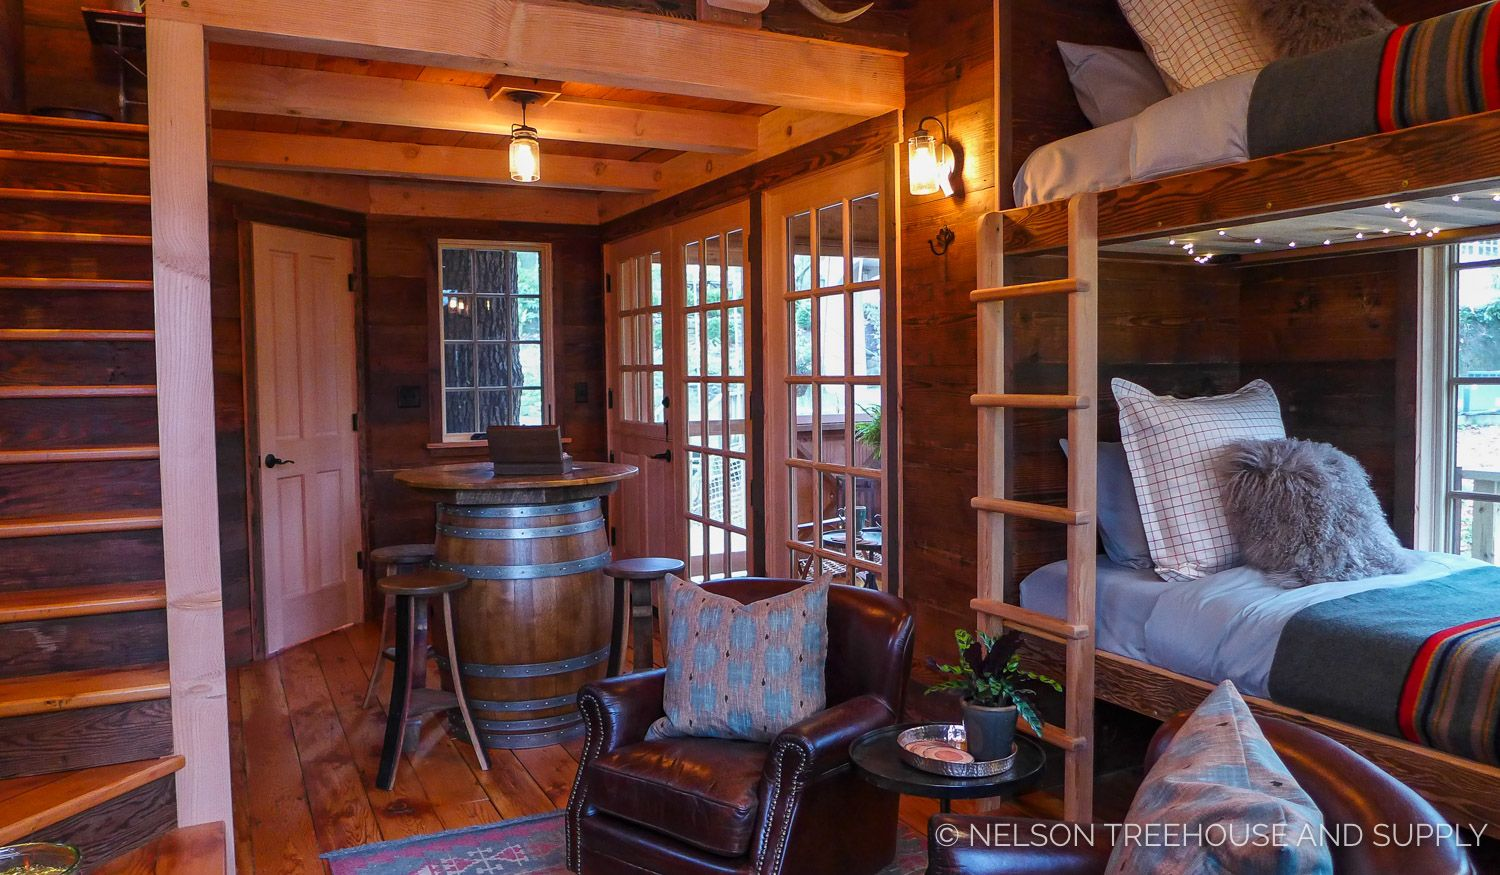 Glamorous Glamping Retreat Treehouse masters, Country